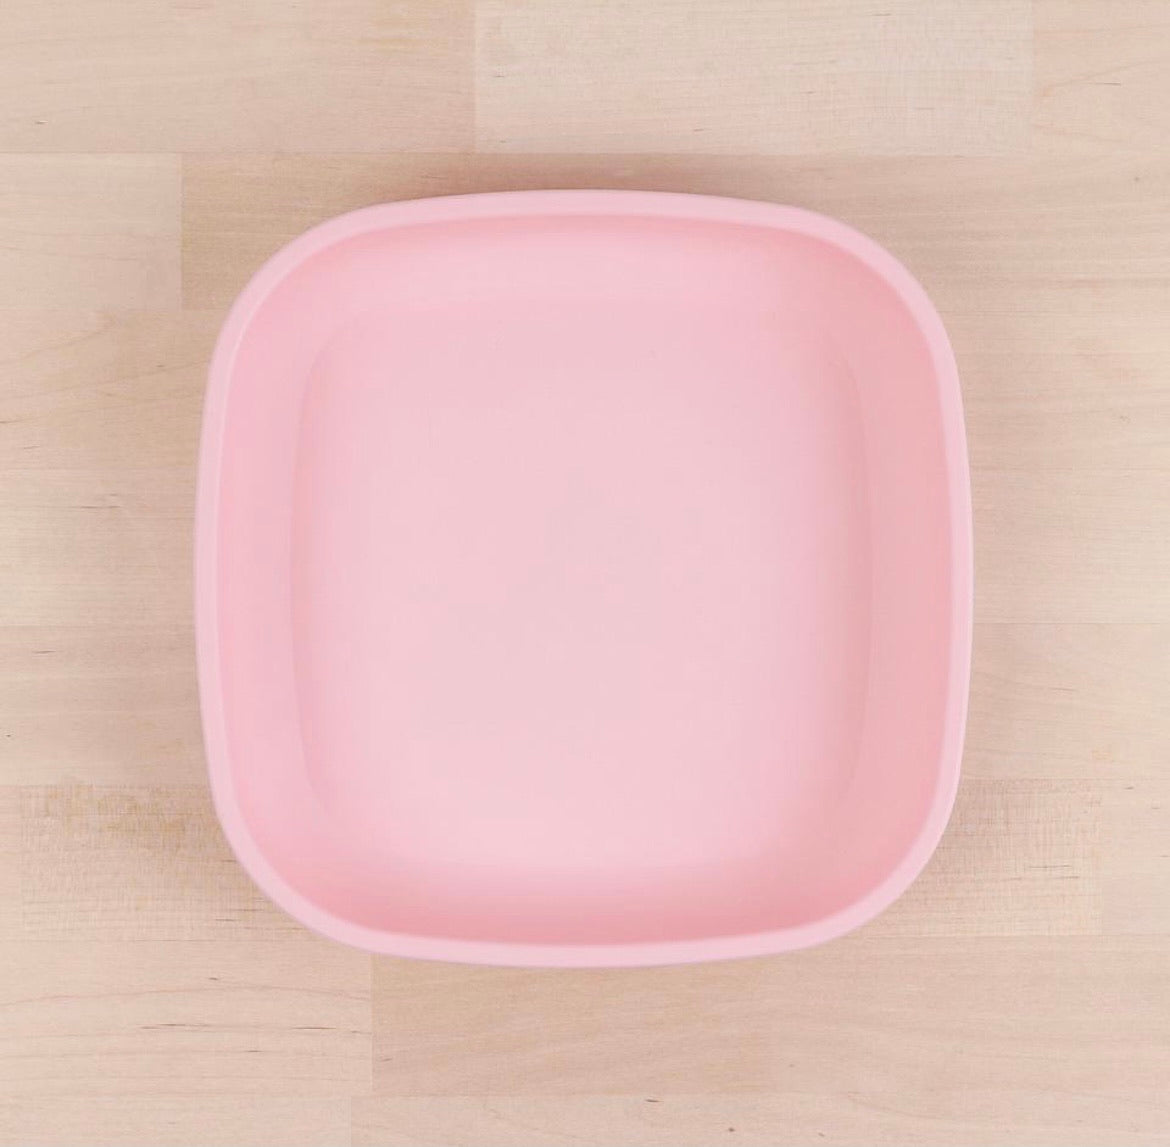 "7"" Plate - Ice Pink (4671220121687)"